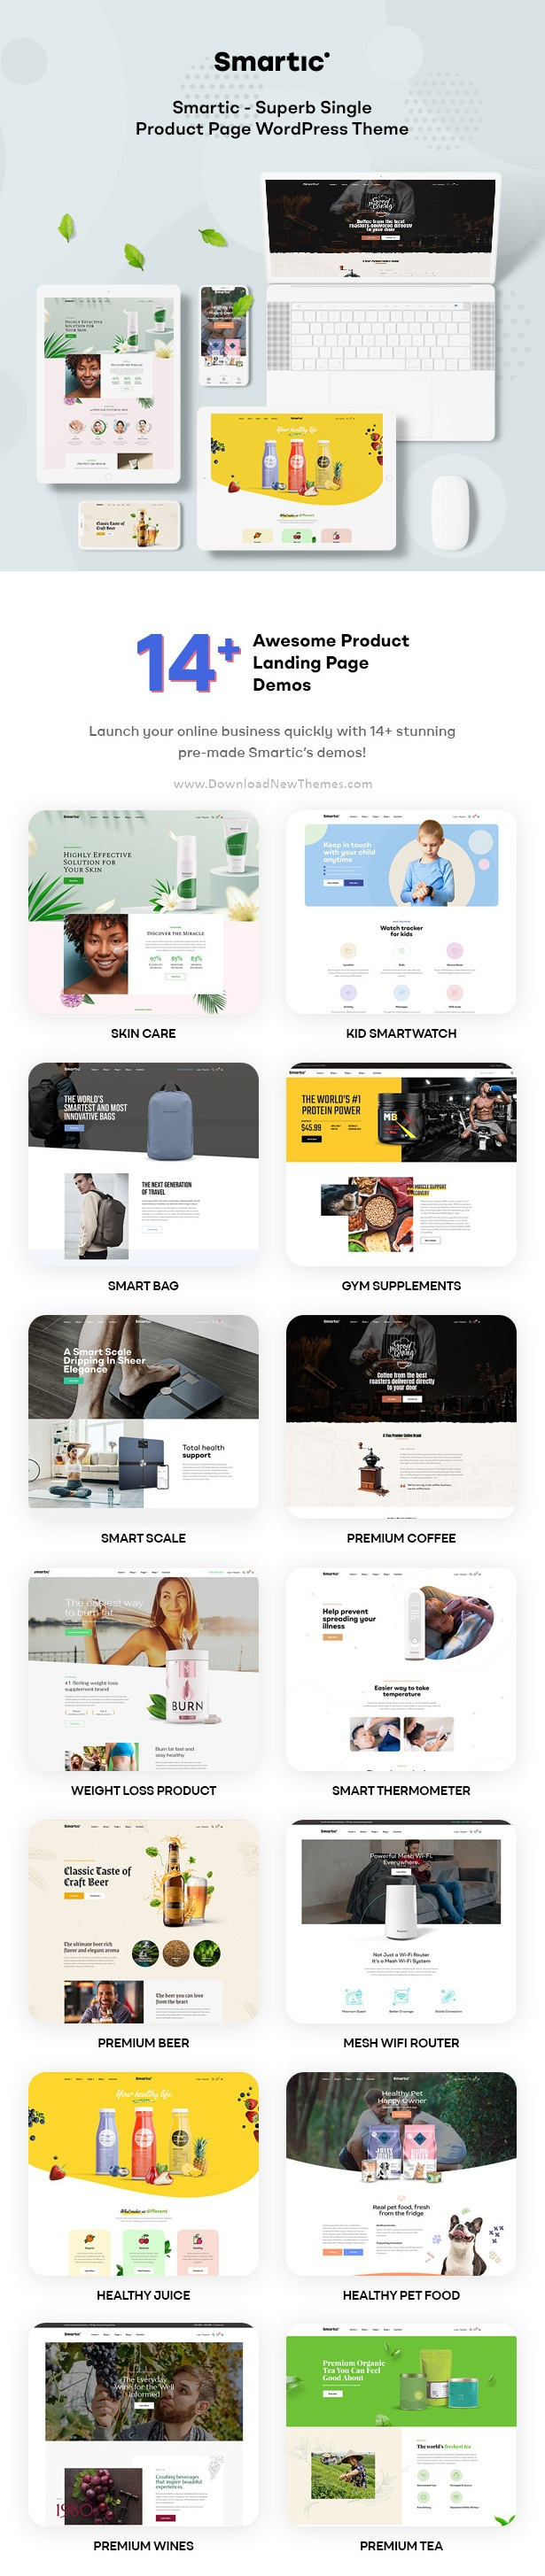 Product Landing Page WooCommerce Theme